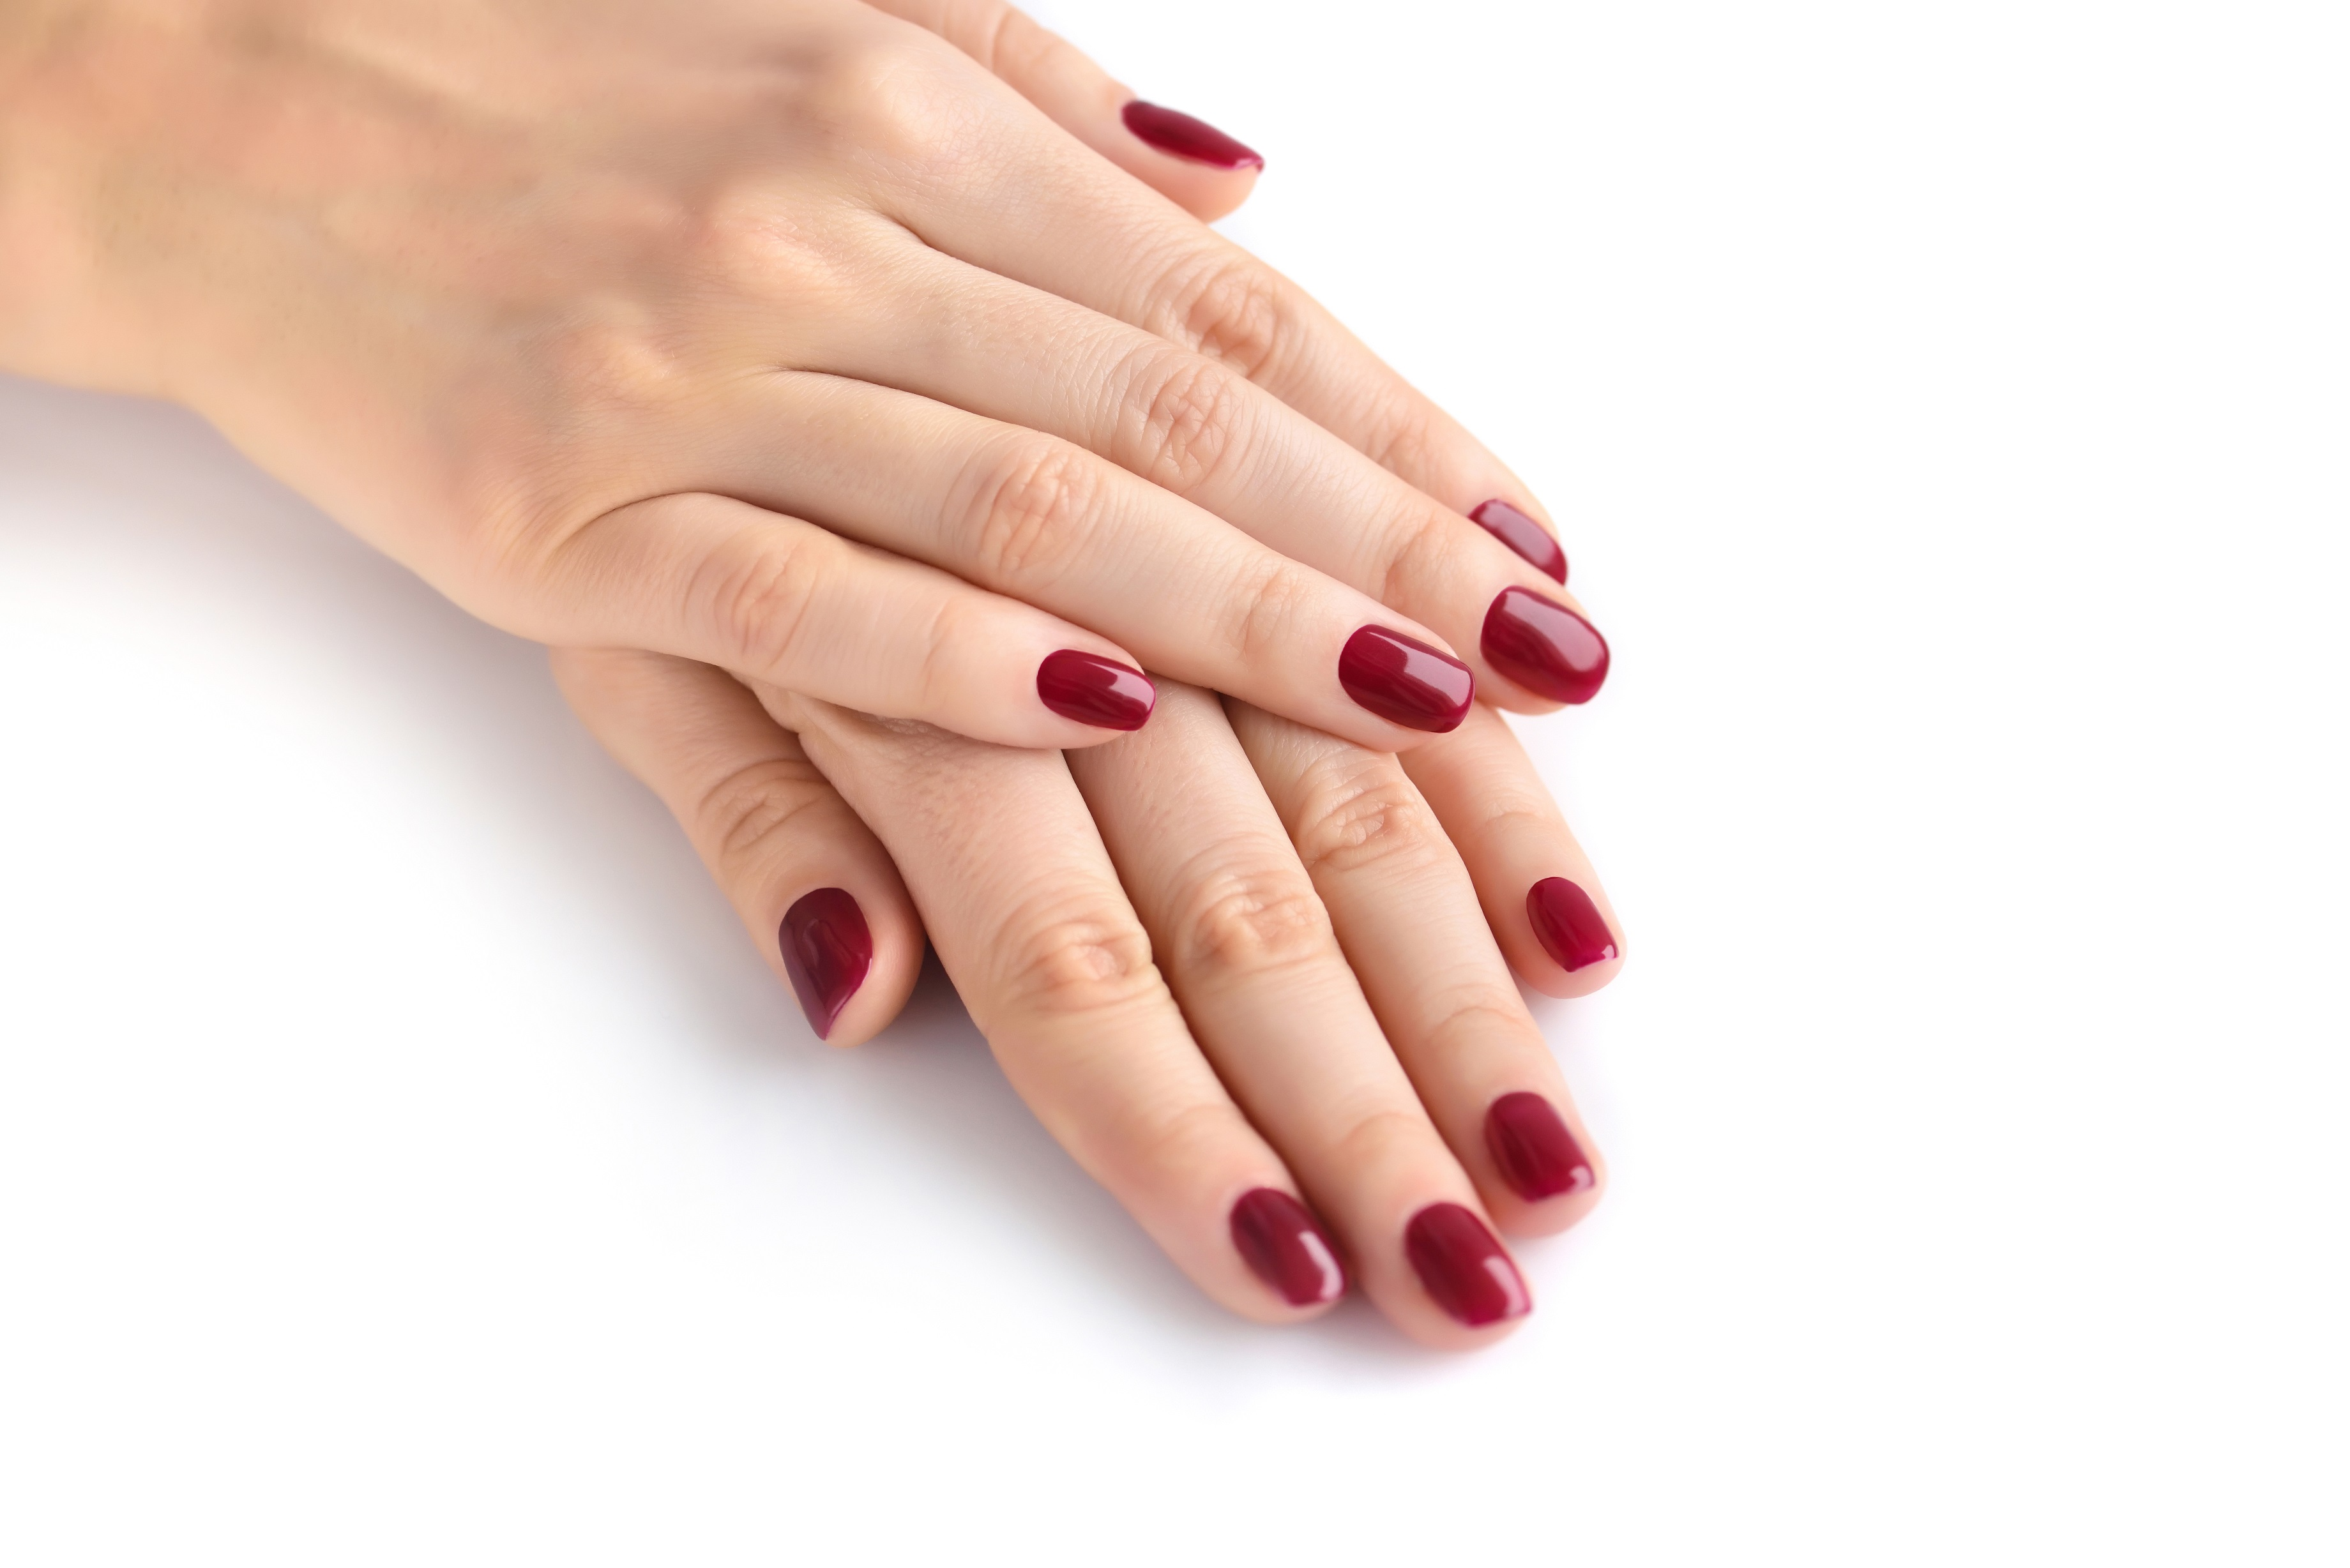 Closeup of hands of a young woman with red manicure on nails aga ...